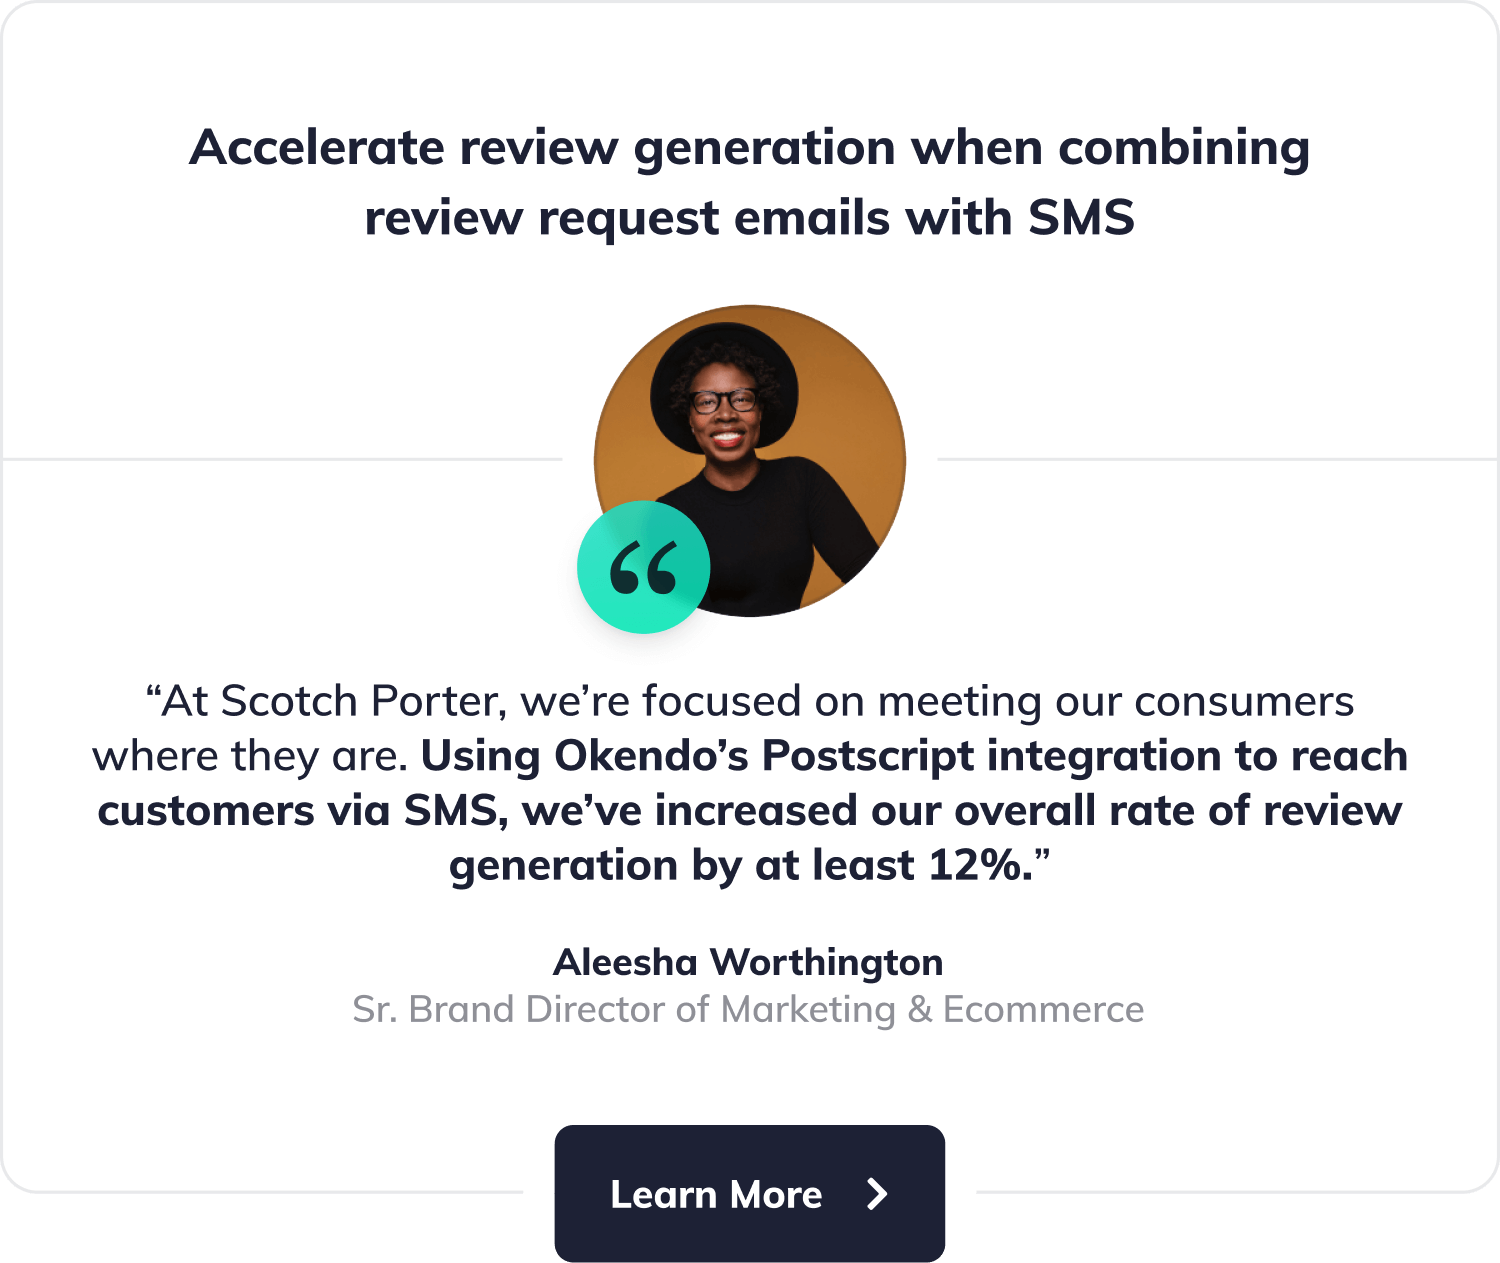 """Accelerate review generation when combining review request emails with SMS. """"At Scotch Porter, we're focused on meeting our consumers where they are. Using Okendo's Postscript integration to reach customers via SMS, we've increased our overall rate of review generation by at least 12%"""